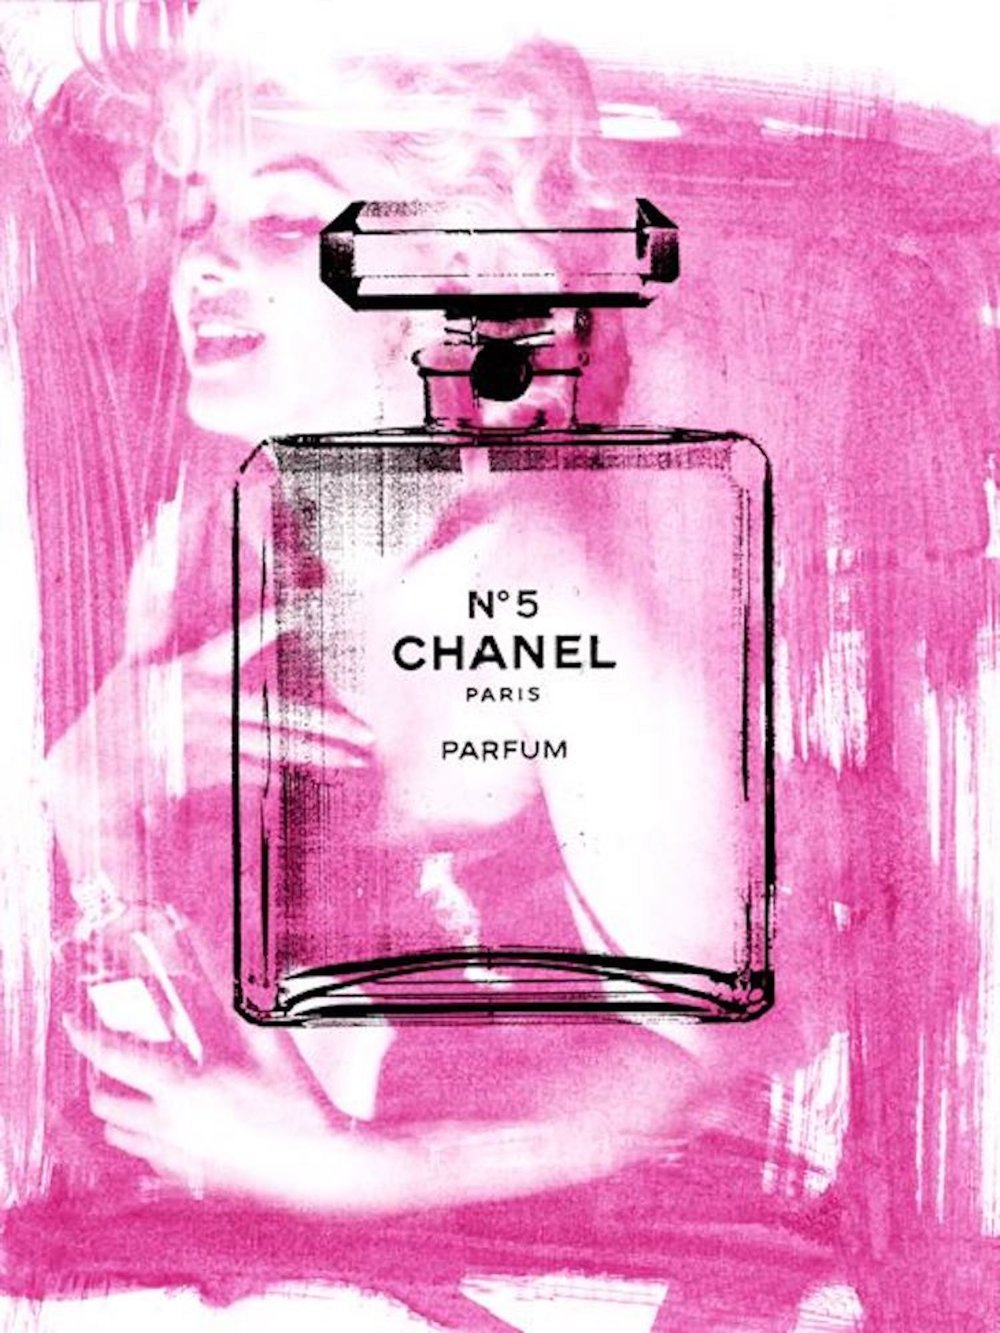 Chanel No. 5 Pink (40 x 30)